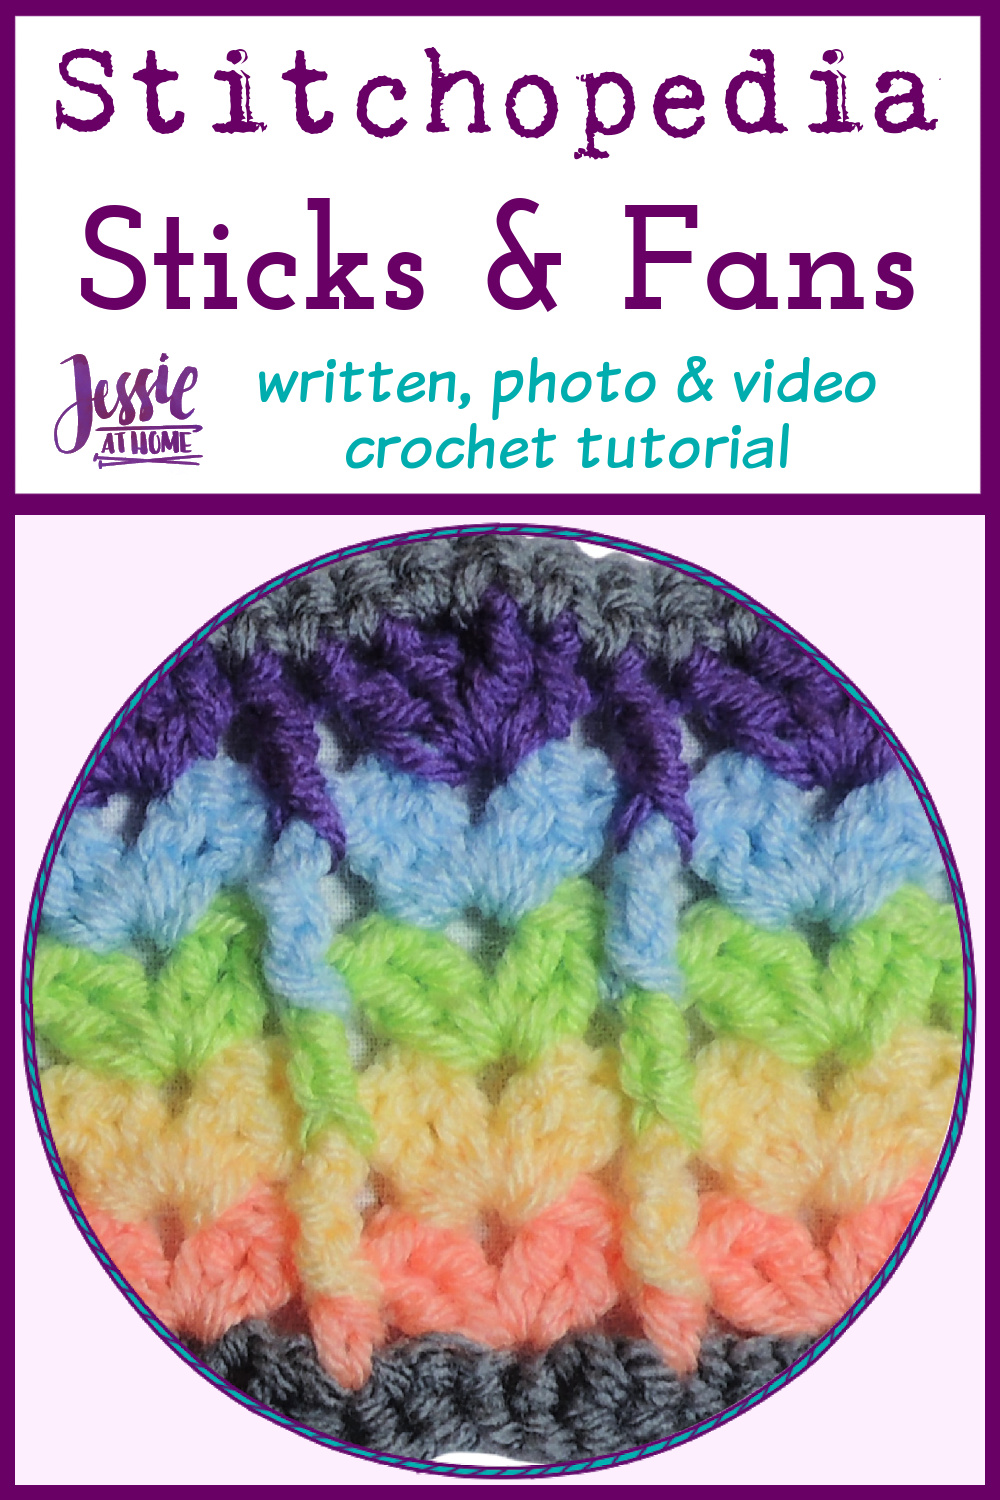 Sticks and Fans Stitch - written, photo, and video crochet tutorial